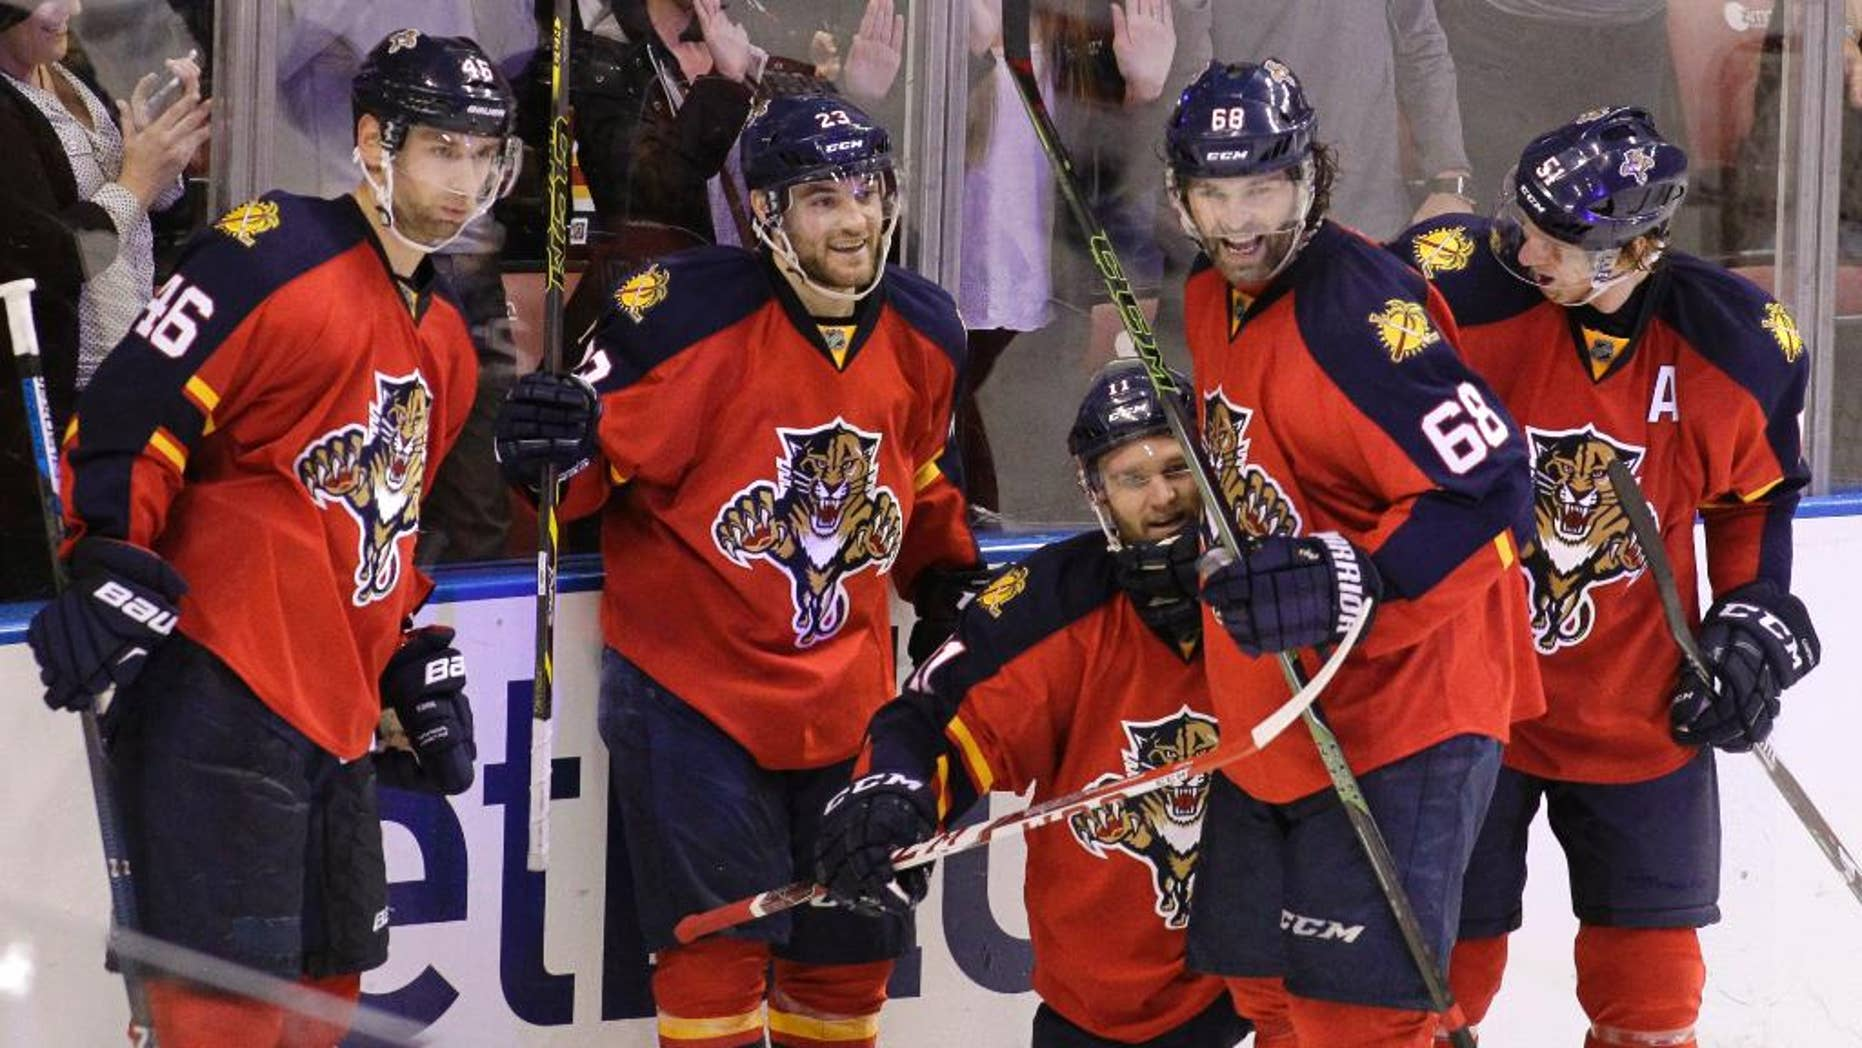 Florida Panthers' Jonathan Huberdeau, third from left, celebrates with teammates Jakub Kindl (46), of the Czech Republic,  Rocco Grimaldi, second from left, Jaromir Jagr (68), of the Czech Republic, and Brian Campbell, right, after scoring a goal during the third period of an NHL hockey game against the New Jersey Devils, Thursday, March 31, 2016, in Sunrise, Fla. The Panthers won 3-2. (AP Photo/Luis M. Alvarez)